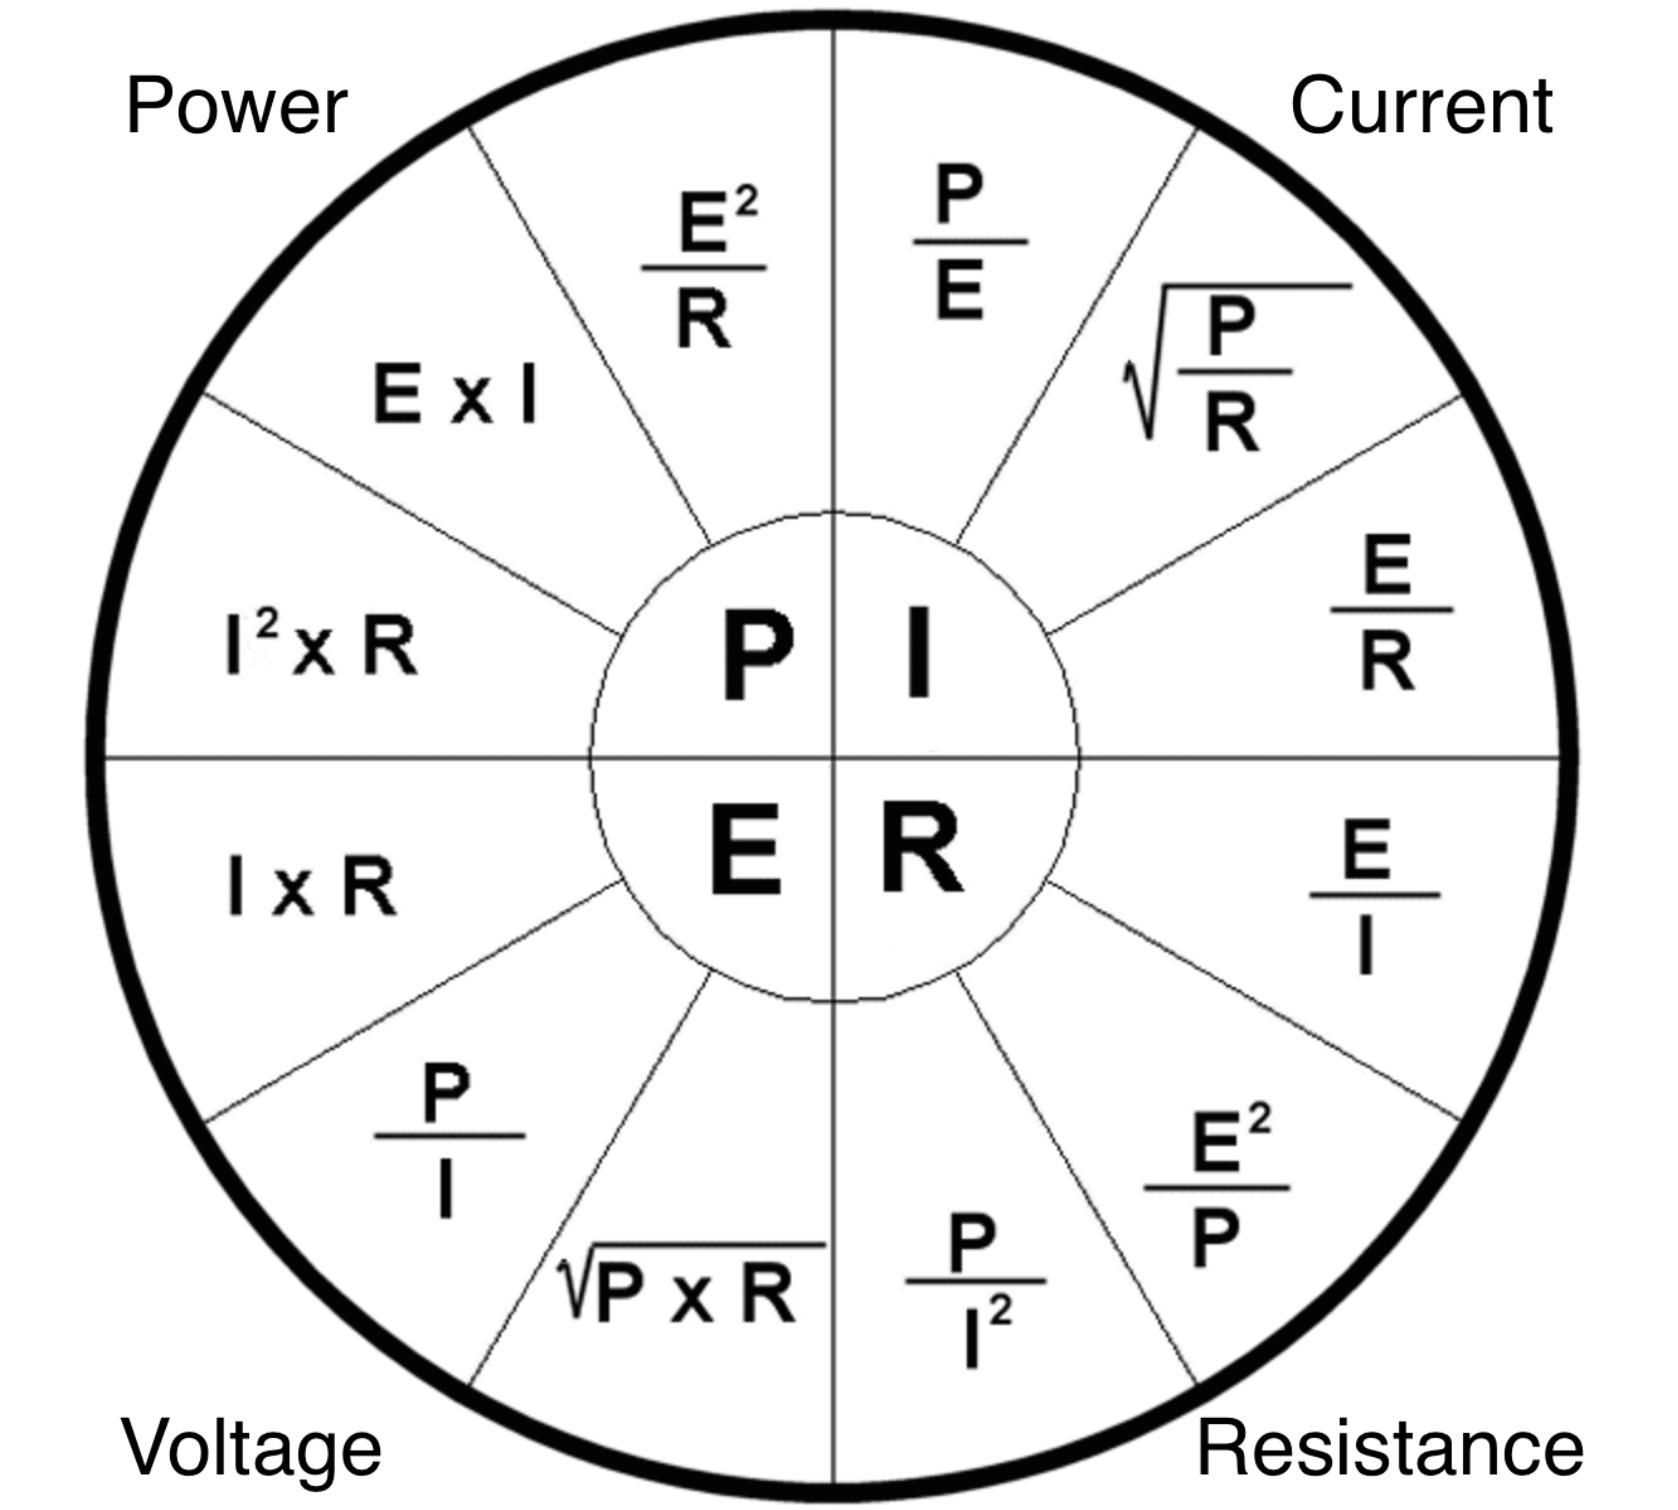 Ohm's law formula wheel showing all the formulas to find volts, watts, amps, and ohms